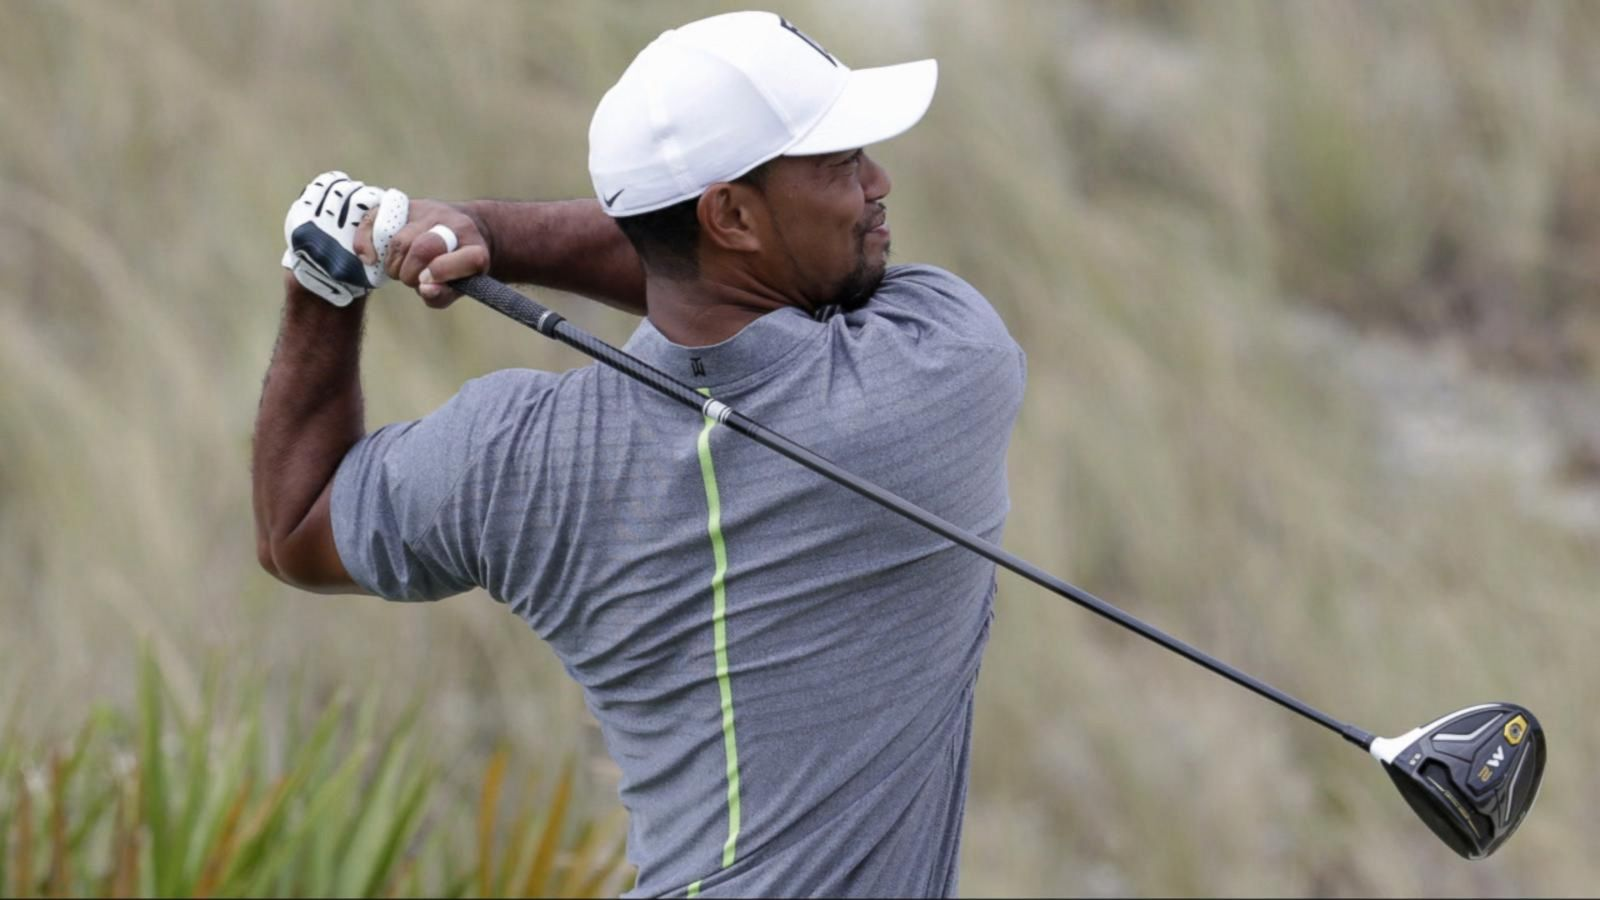 VIDEO: Tiger Woods Returns to the Links After 15-Month Layoff